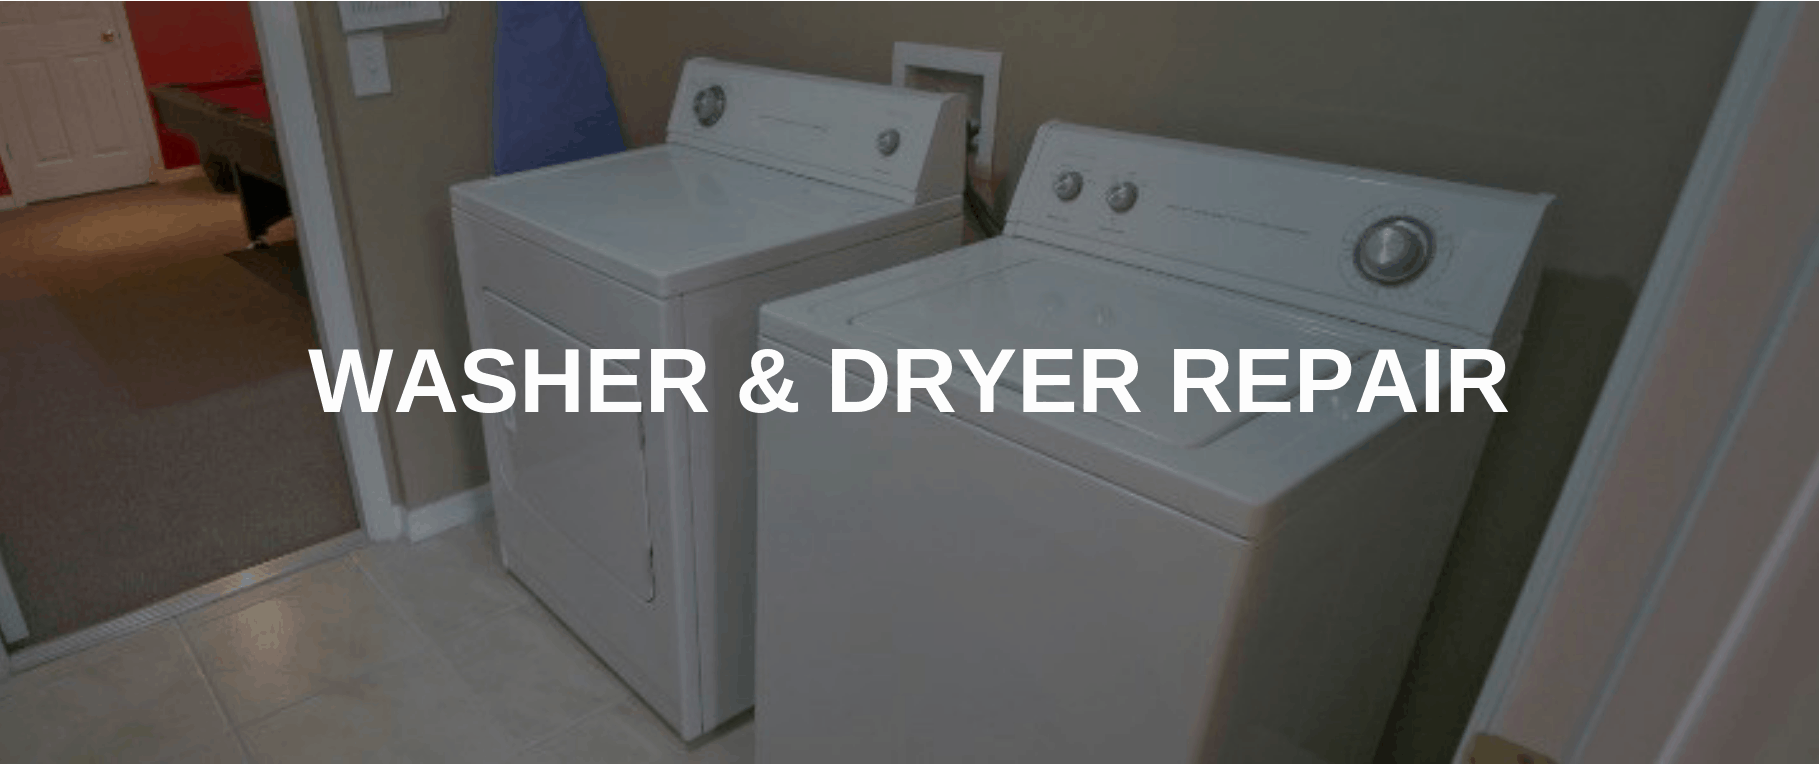 washing machine repair provo